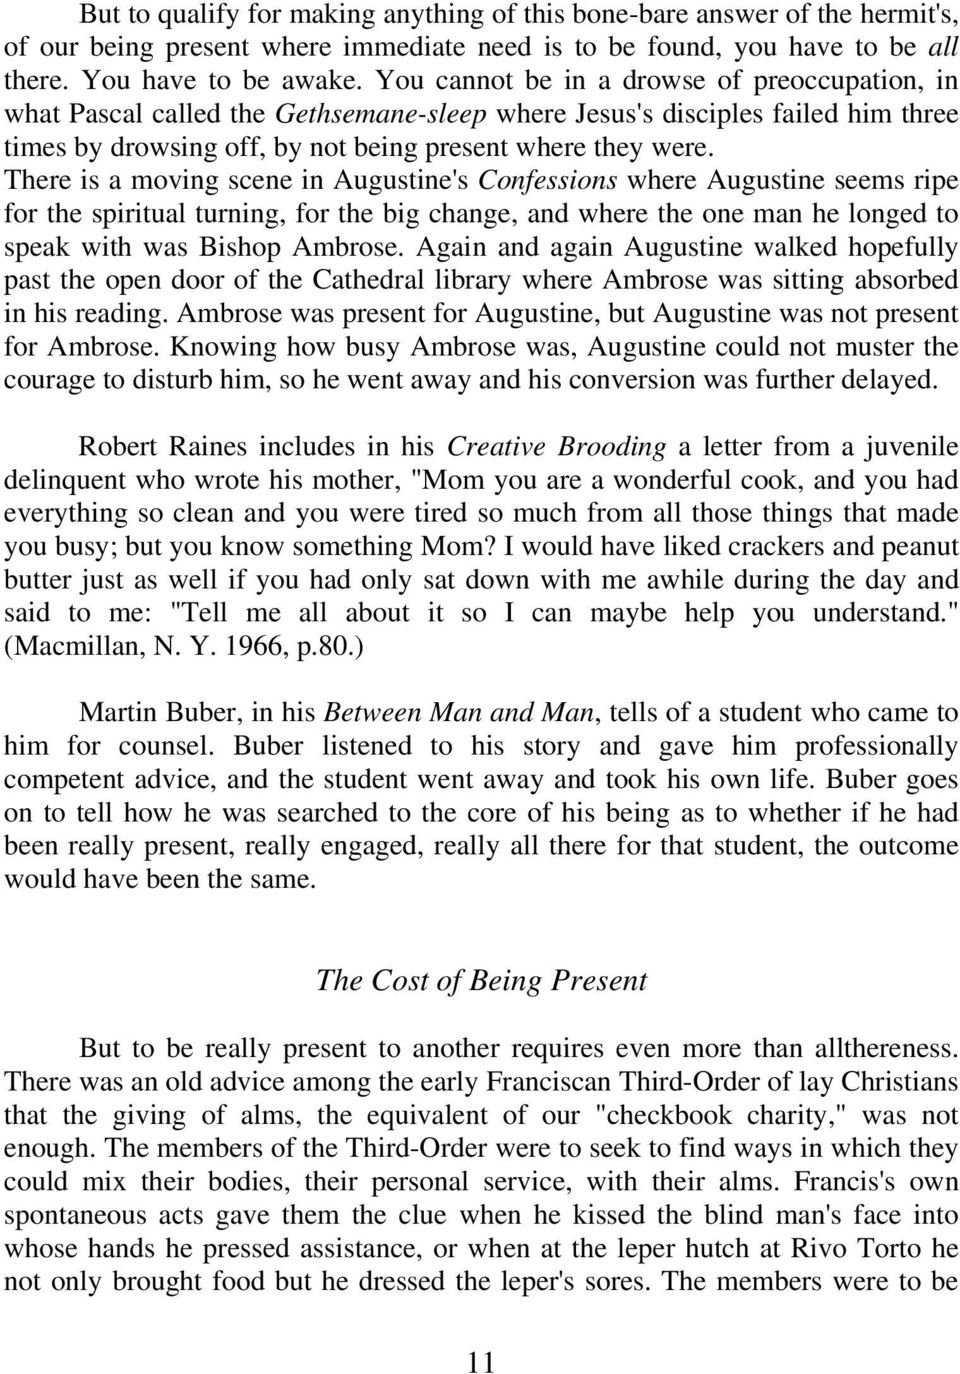 There is a moving scene in Augustine's Confessions where Augustine seems ripe for the spiritual turning, for the big change, and where the one man he longed to speak with was Bishop Ambrose.